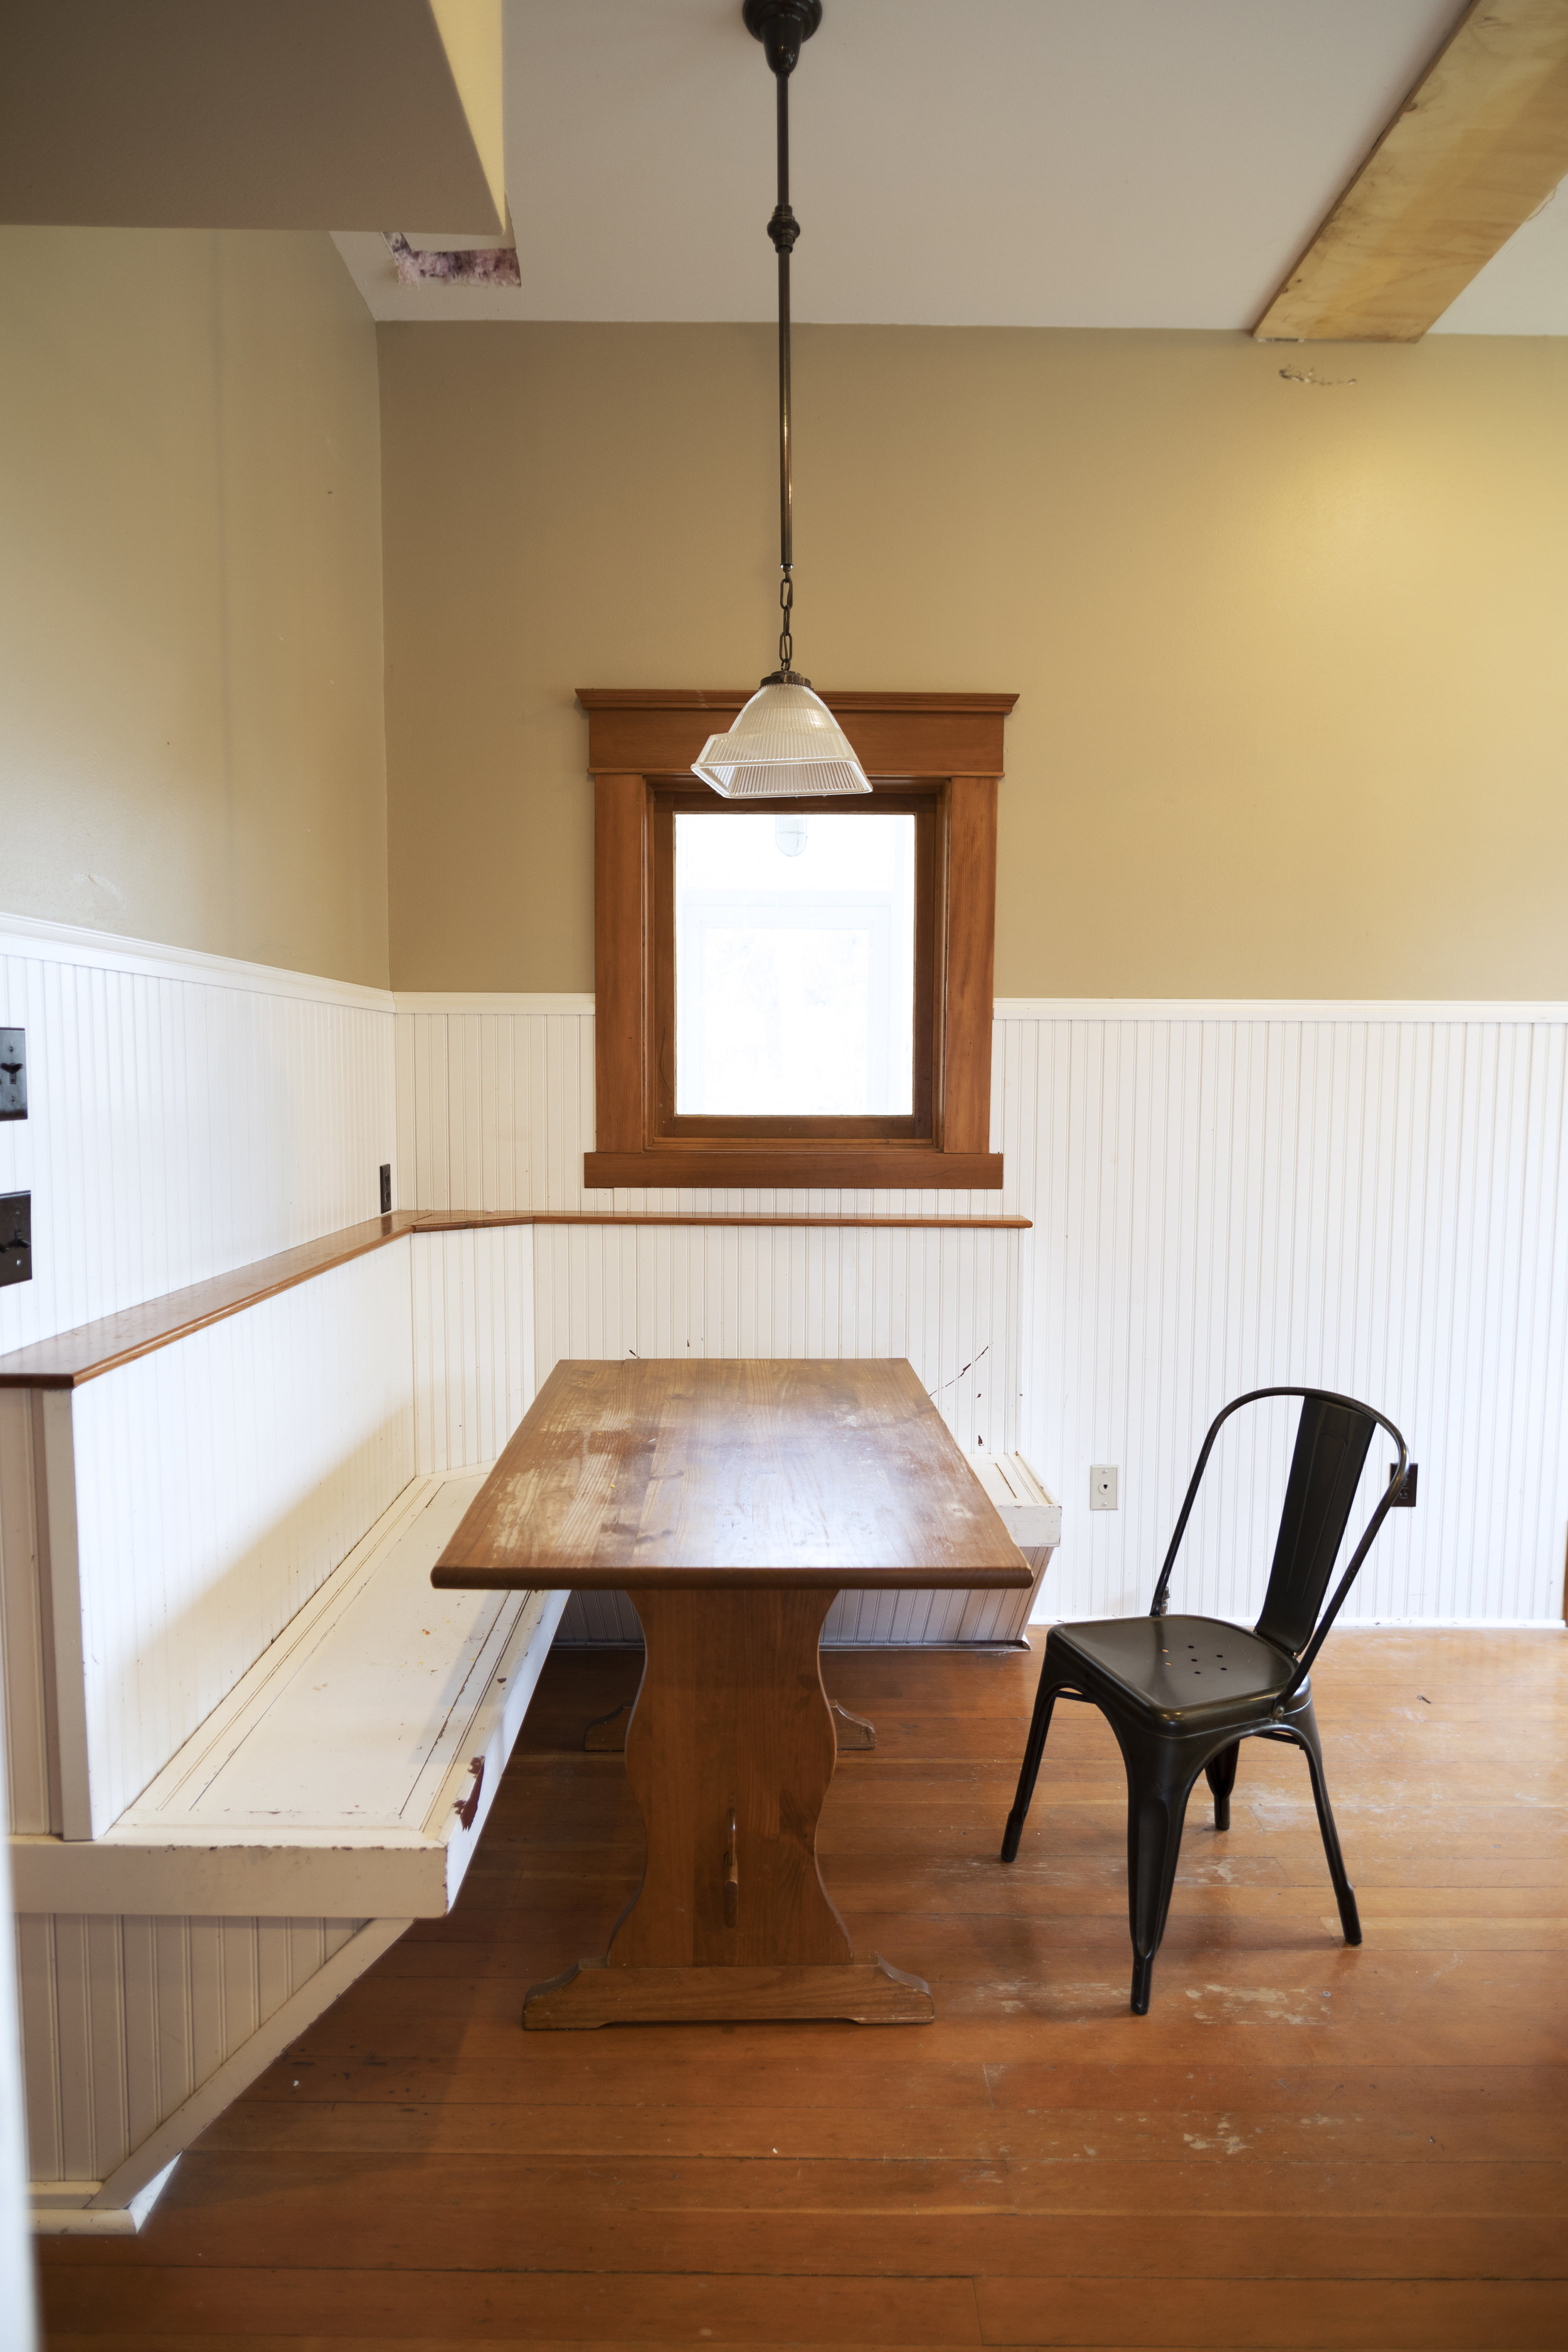 The Grit and Polish - Farmhouse Banquette 04-2019.jpg